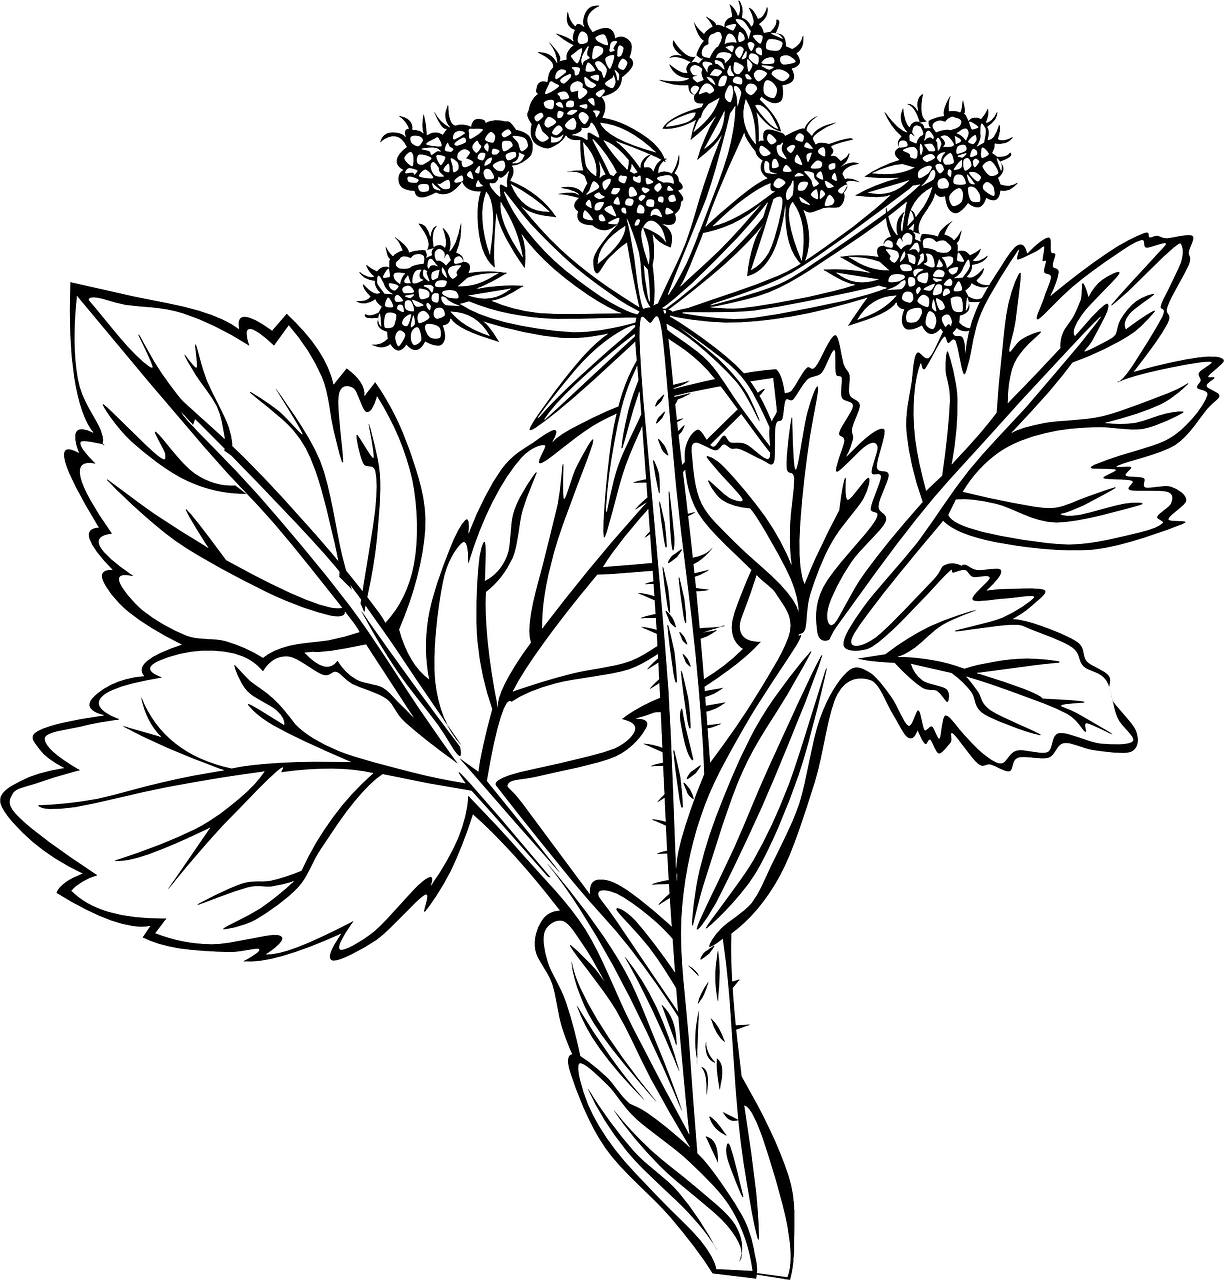 white snakeroot,plant,flowers,black and white,ageratina altissima,richweed,white sanicle,tall boneset,weeds,perennial,herb,poisonous,asteraceae,free vector graphics,free pictures, free photos, free images, royalty free, free illustrations, public domain